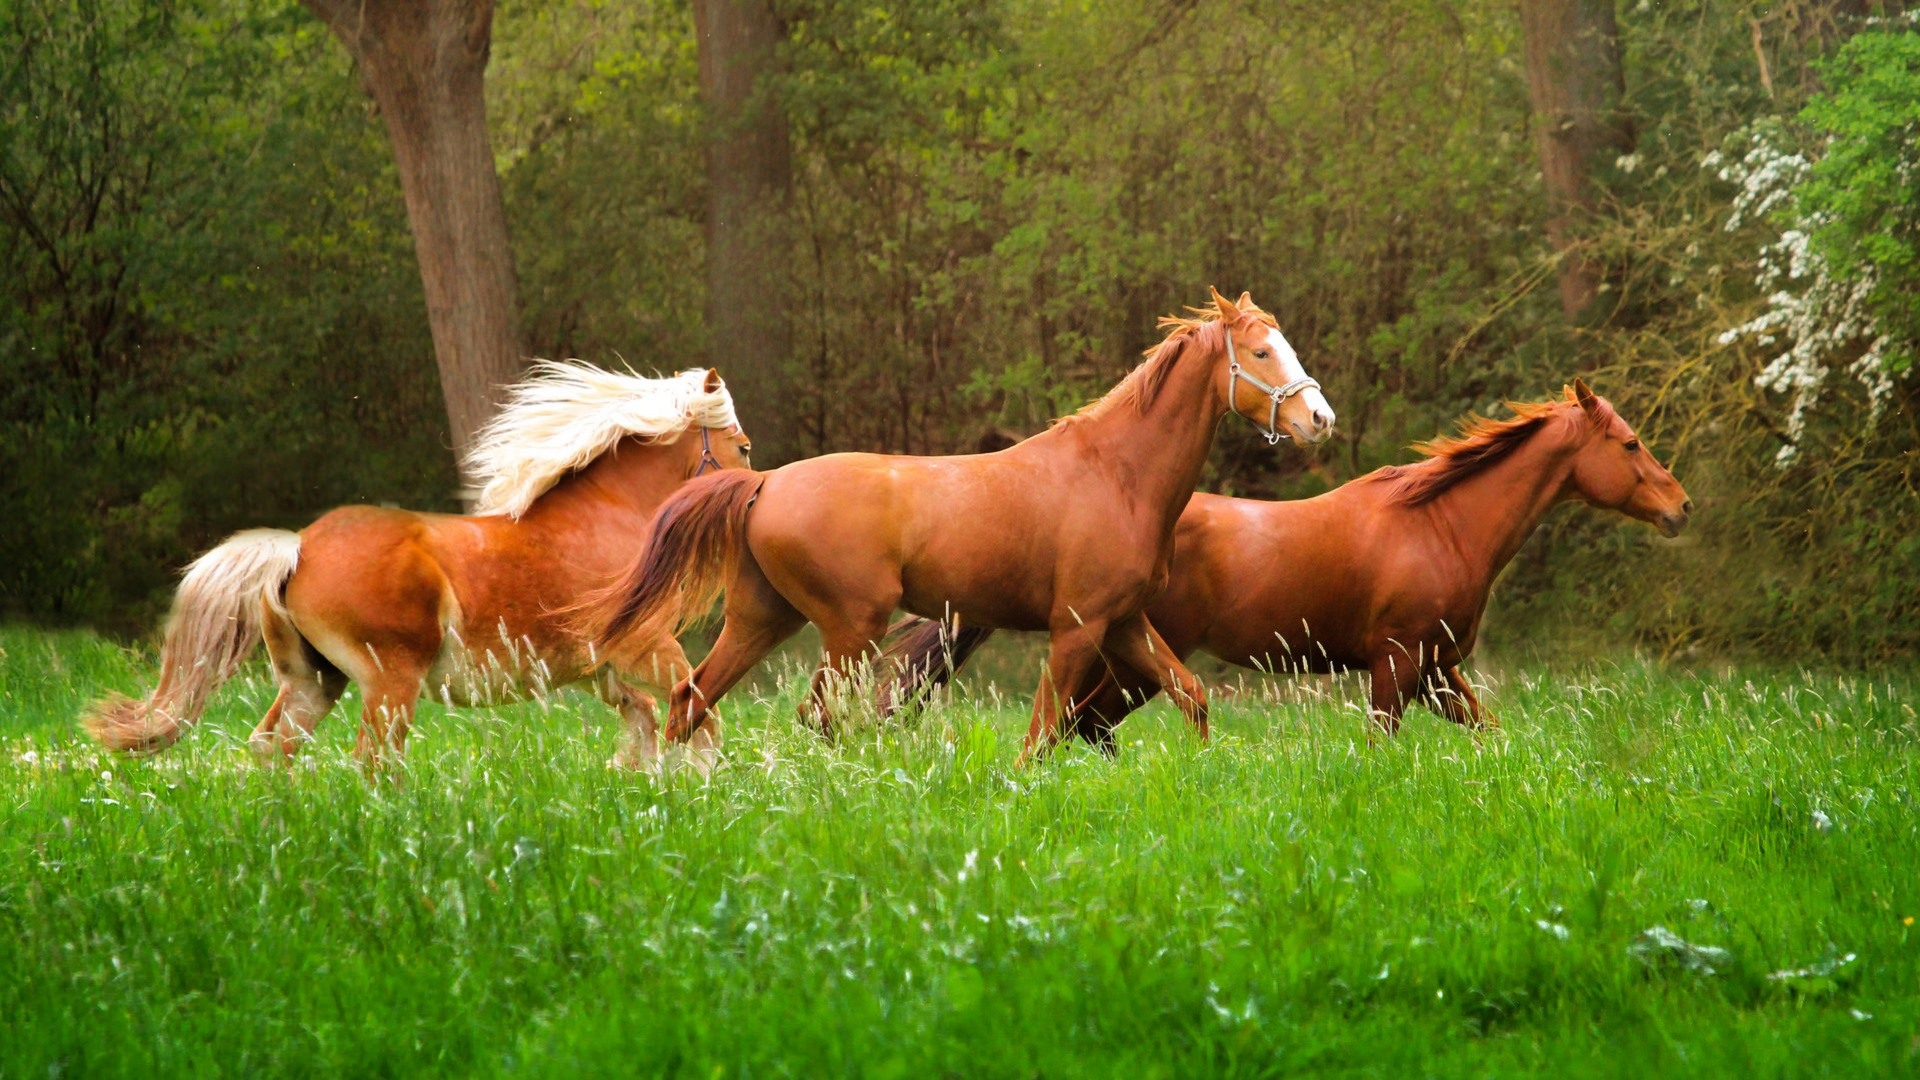 Wallpaper Three Brown Horses Walk In The Grass 1920x1080 Full Hd 2k Picture Image